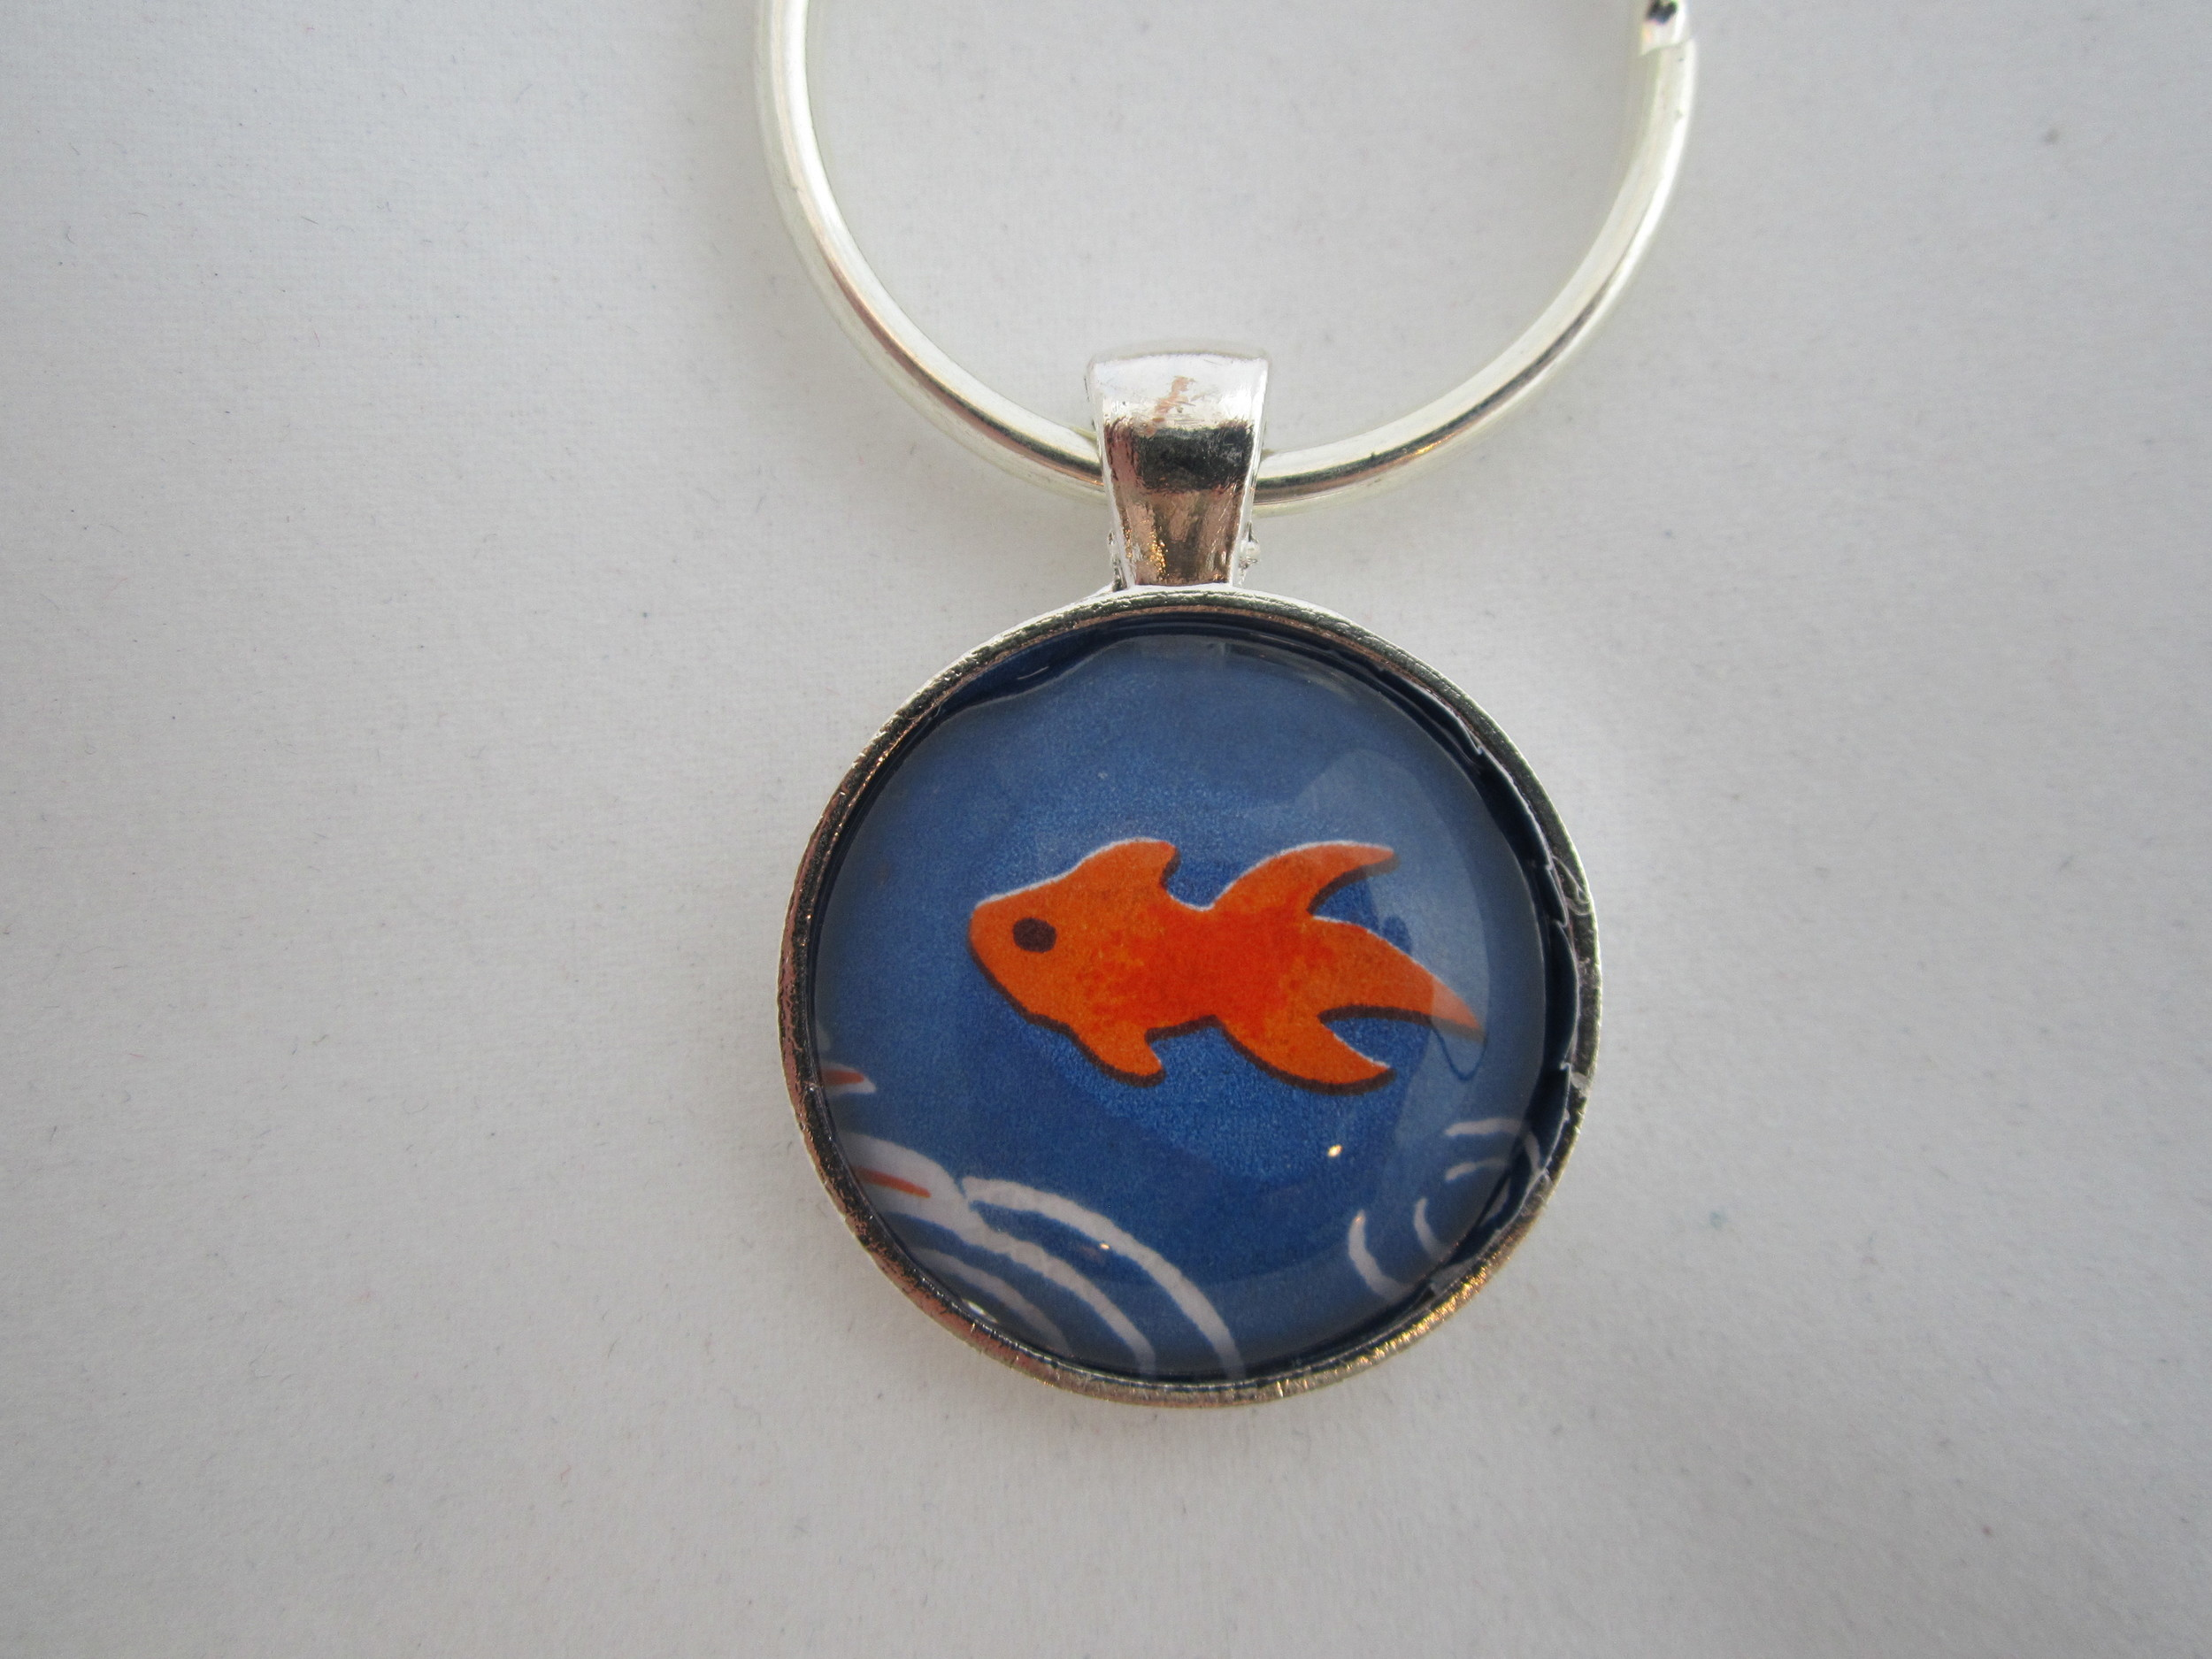 Fish Key Chain 2.JPG